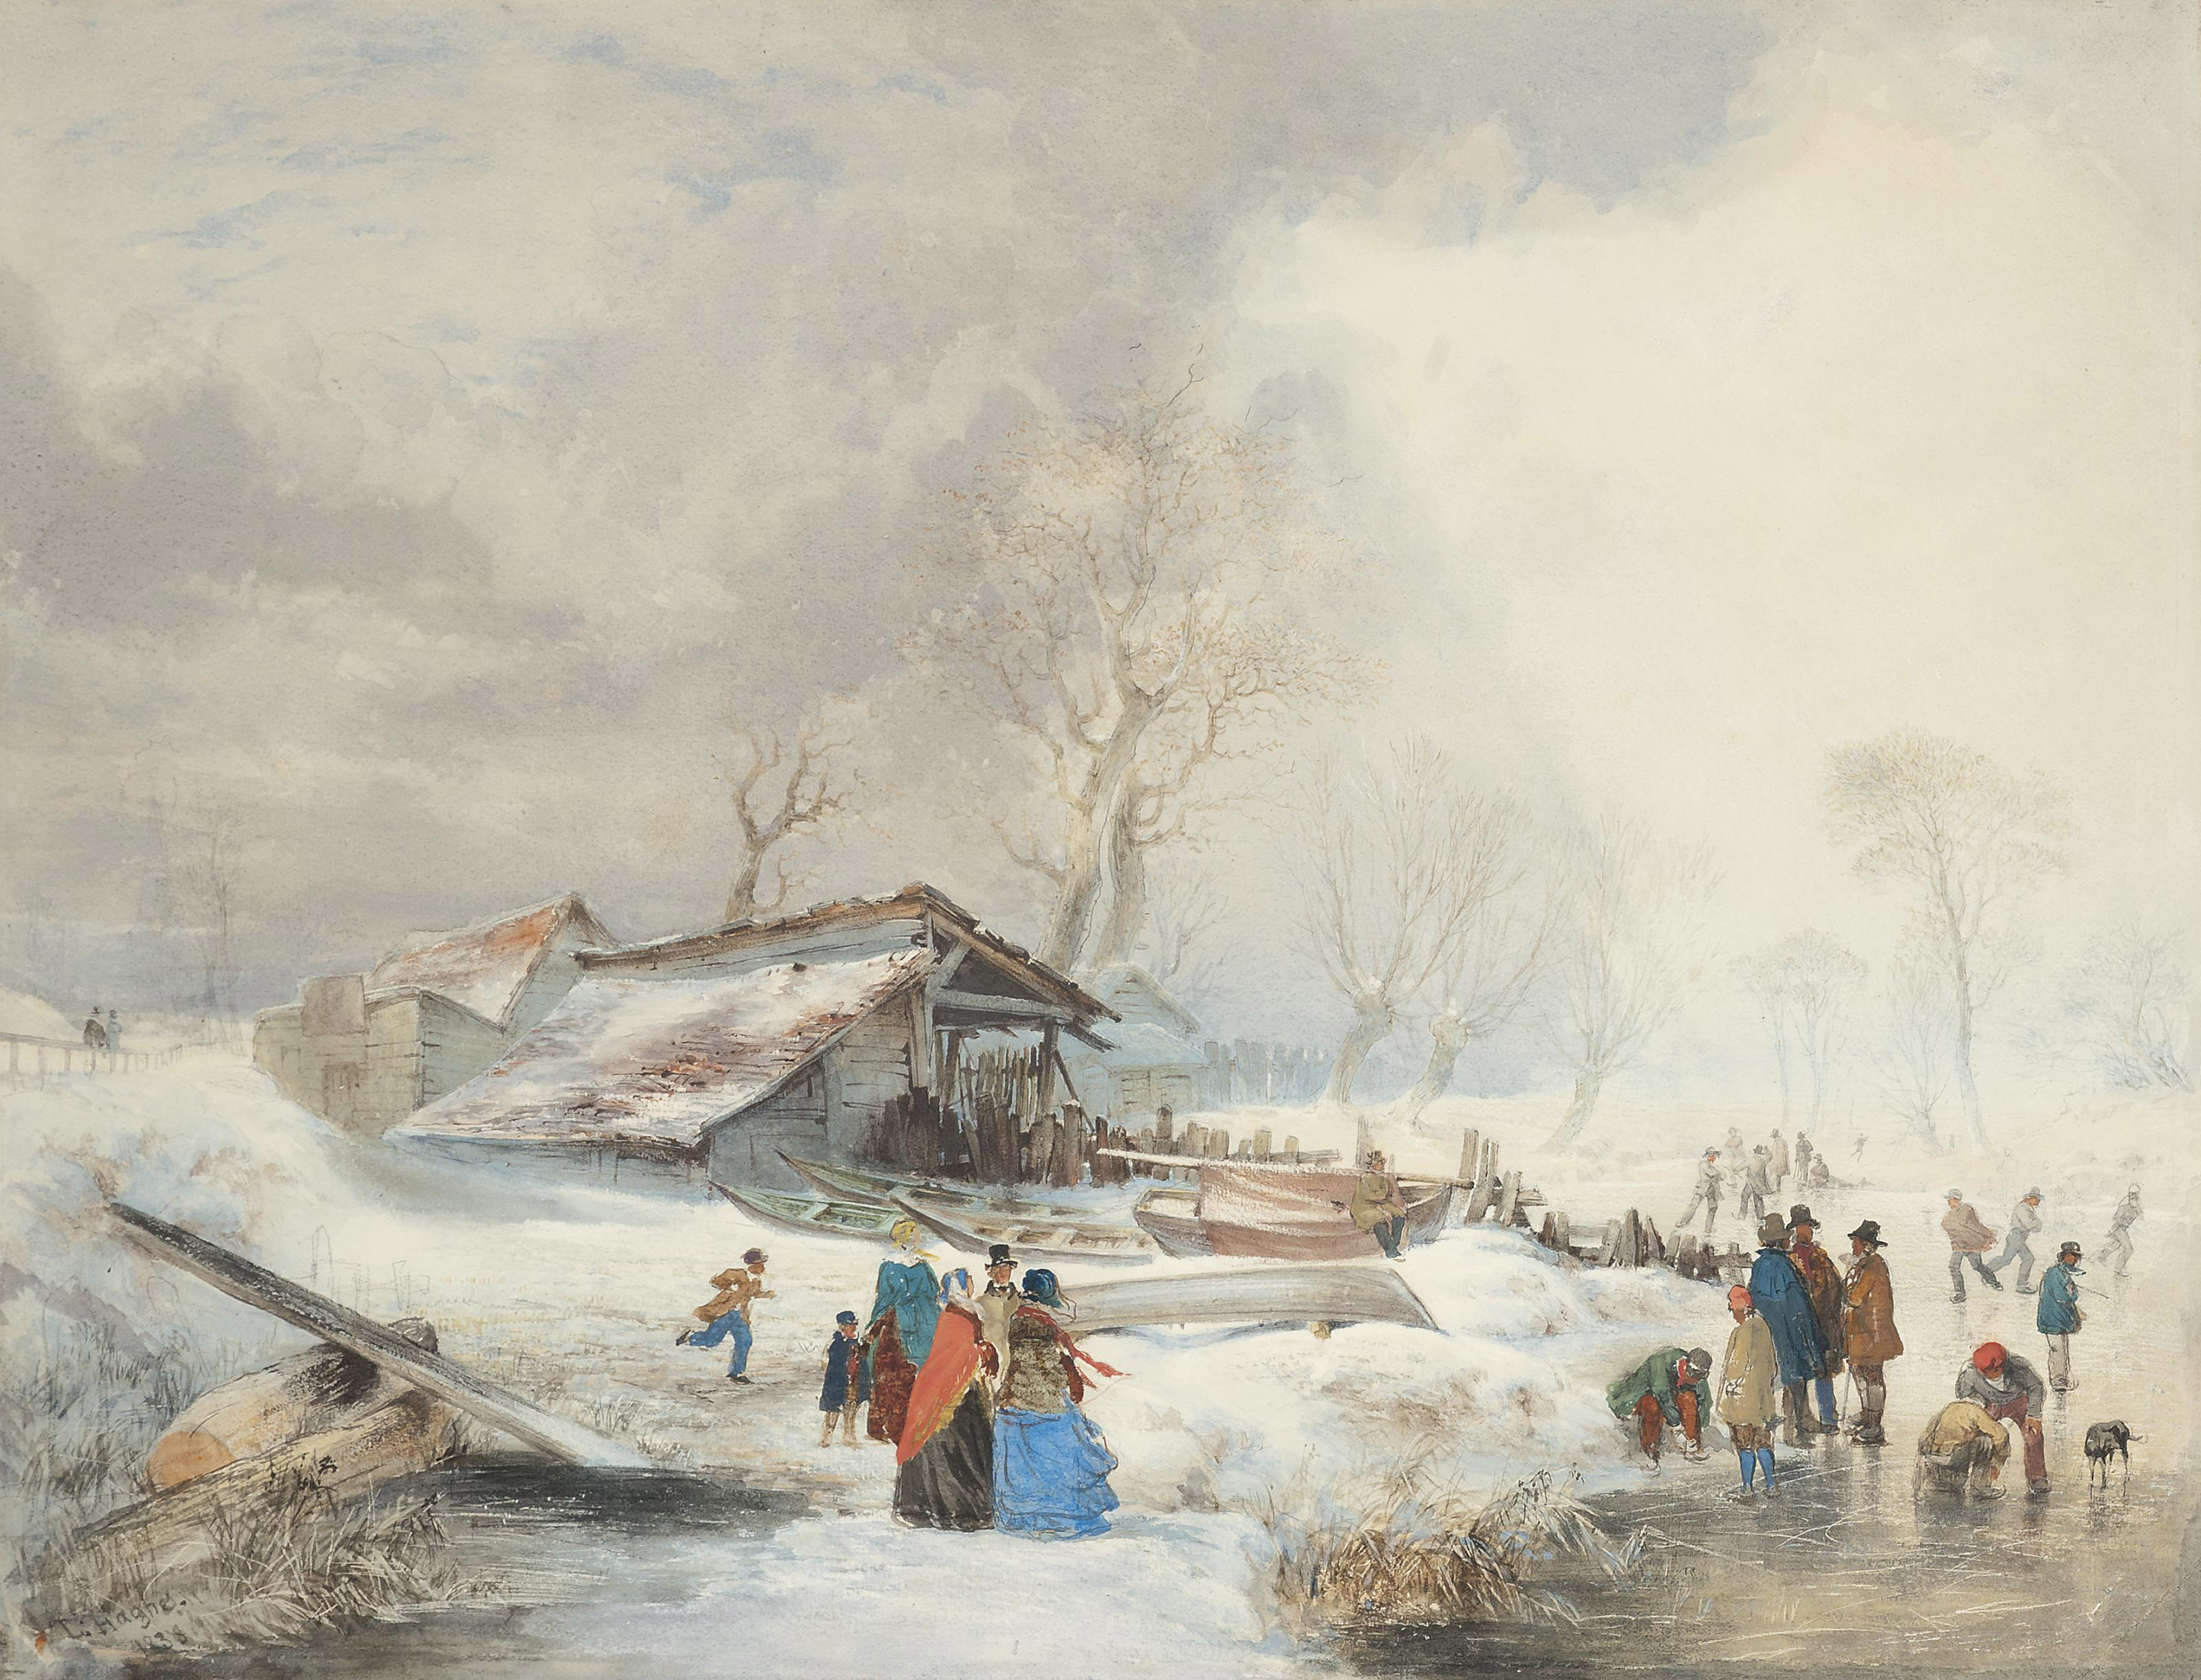 A winter landscape with figures skating on a river